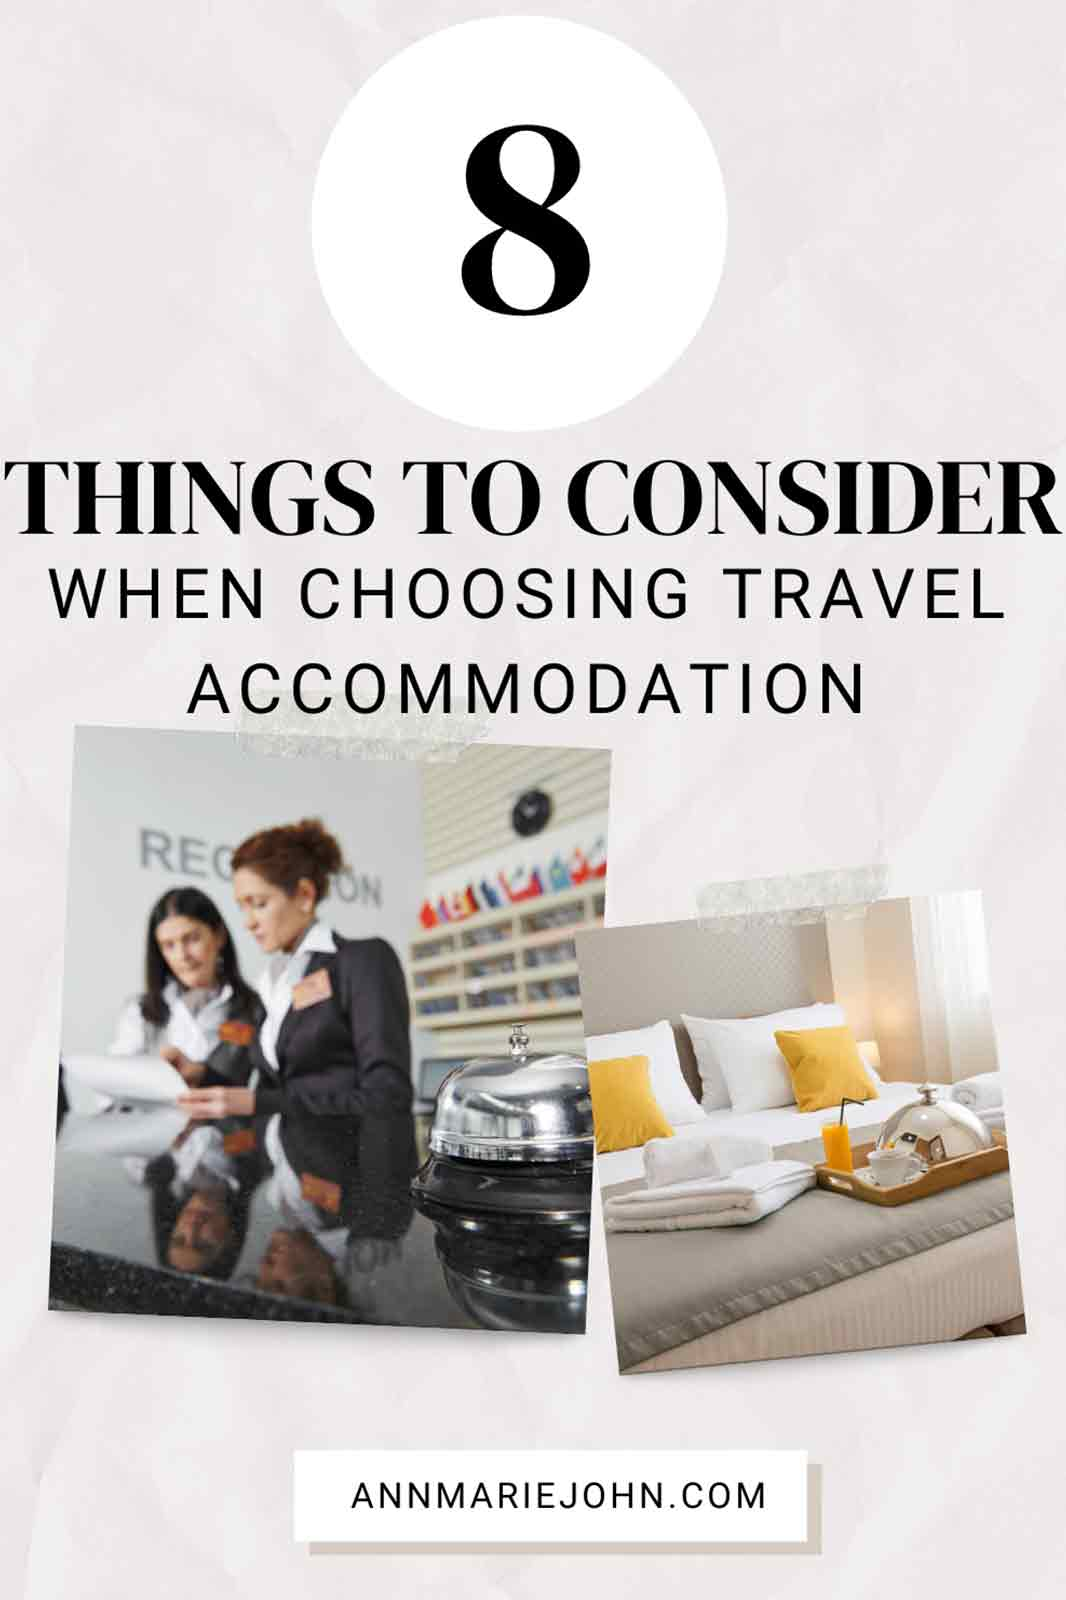 Things to Consider When Choosing Travel Accommodation